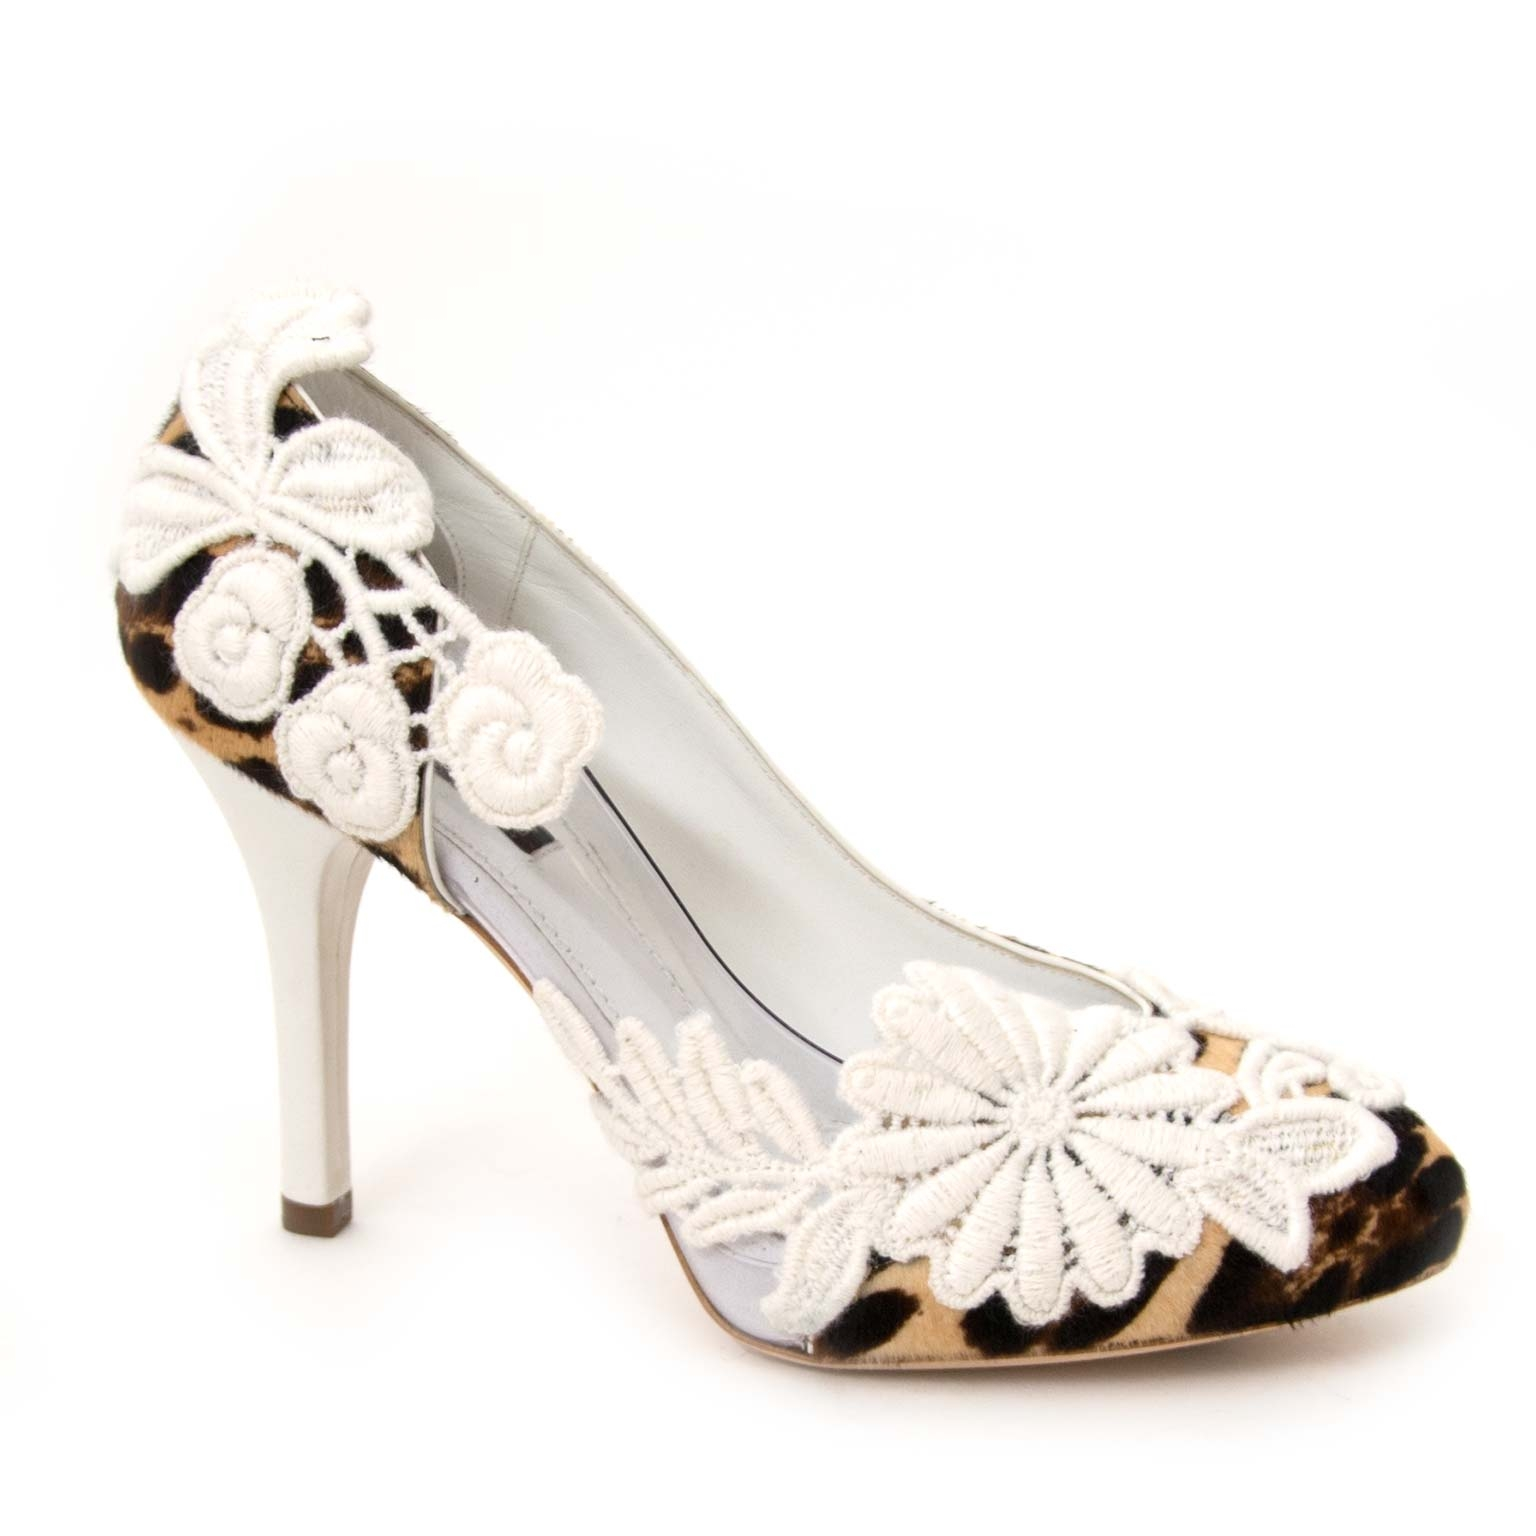 Buy Dolce & Gabbana heels now online at labellov vintage webshop